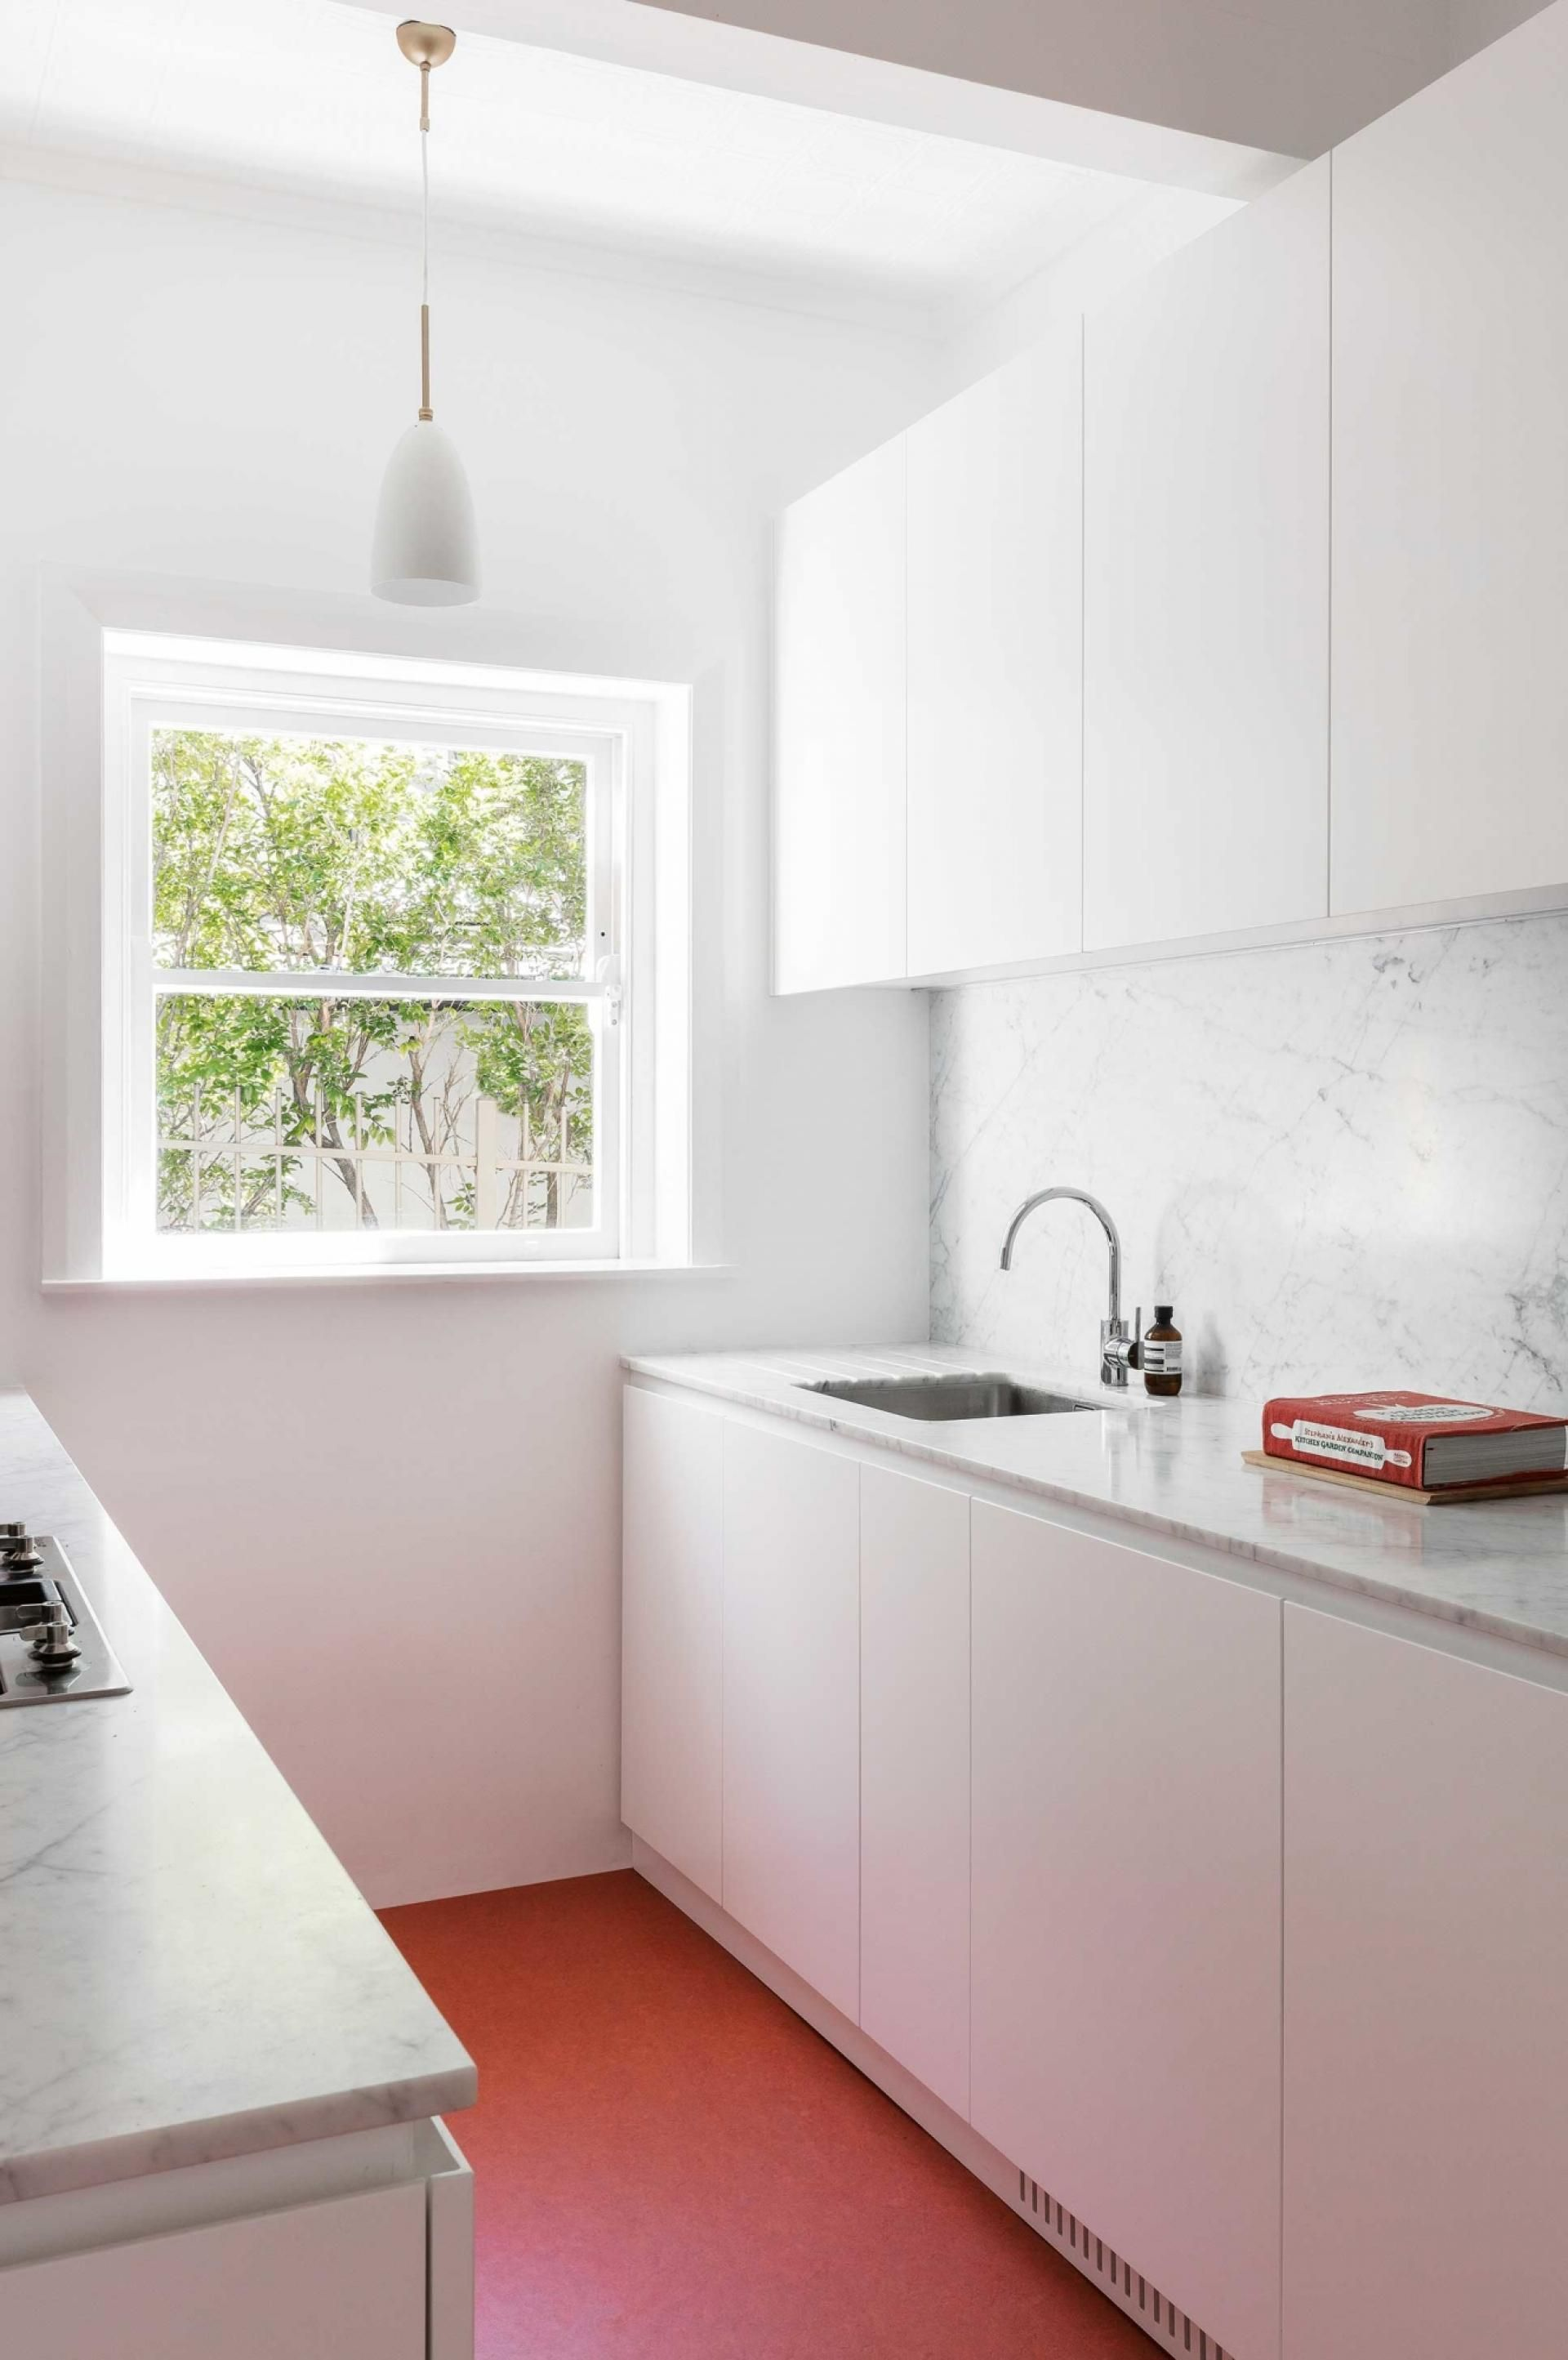 Small wonder: smart kitchen designs. Photography by Tom Ferguson ...